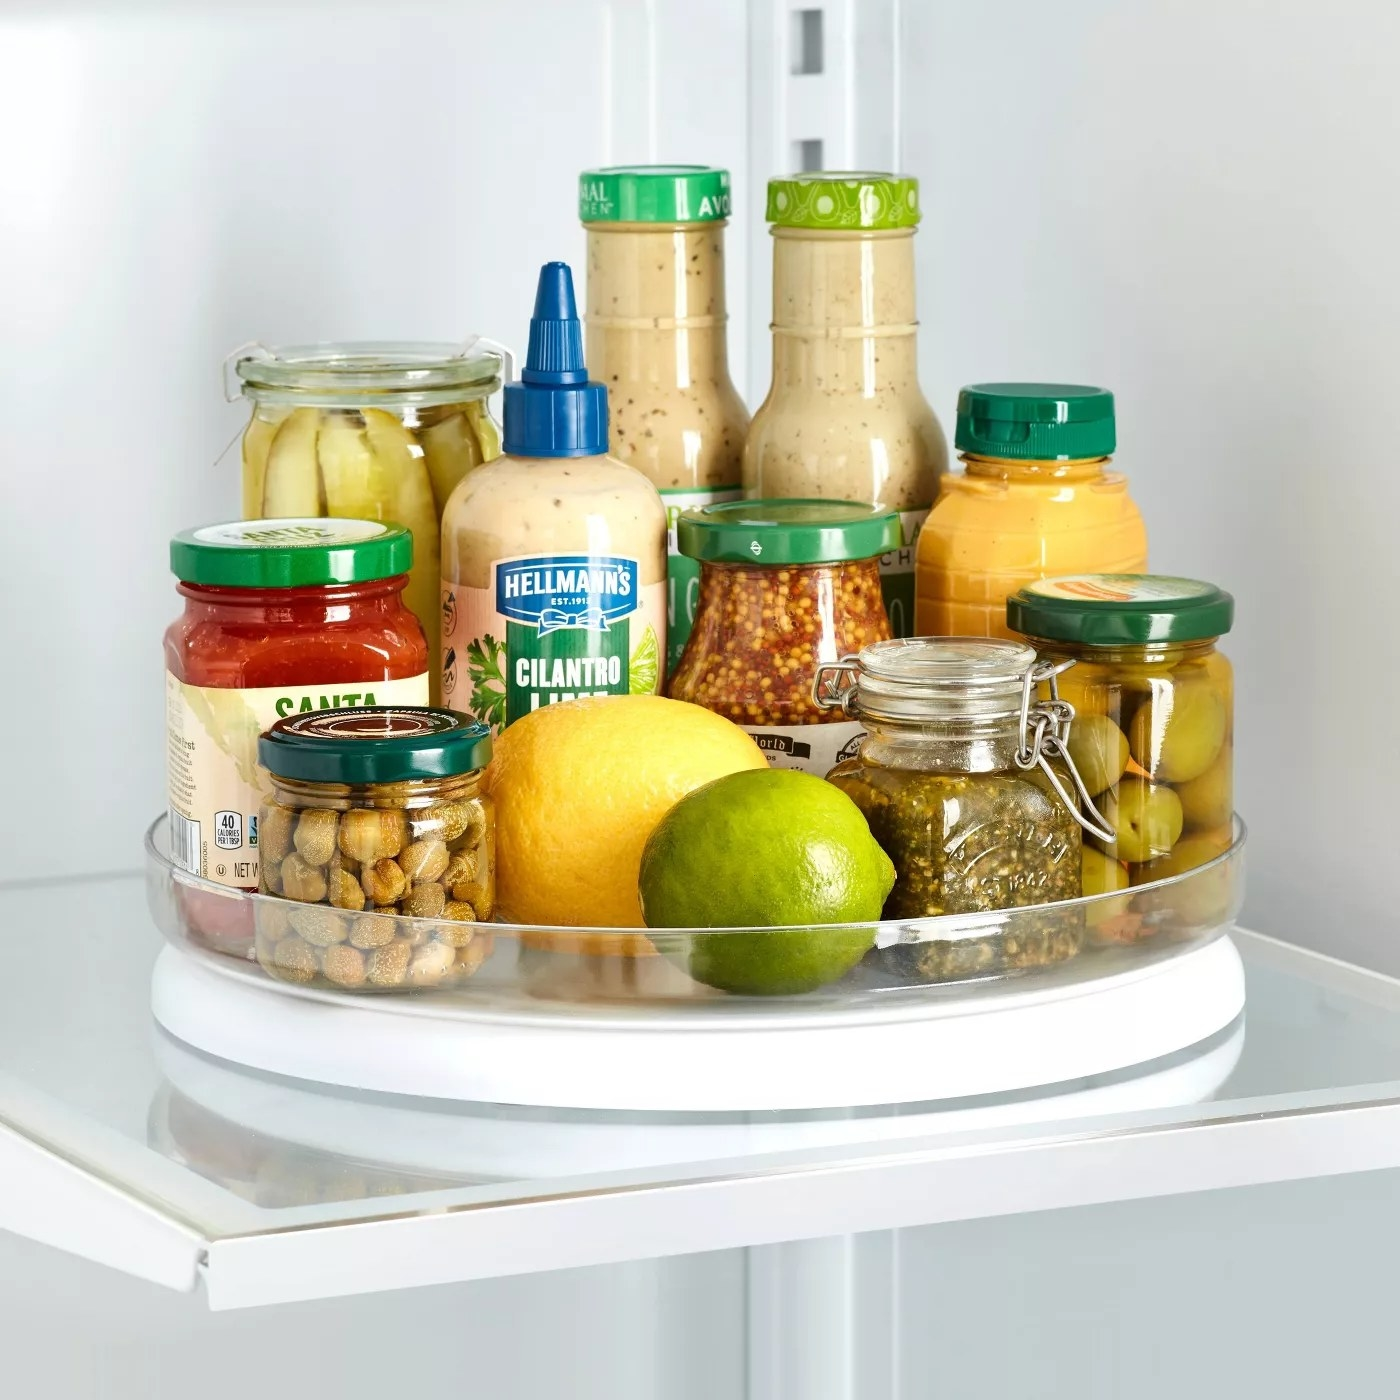 The turntable on a refrigerator shelf, filled with condiments